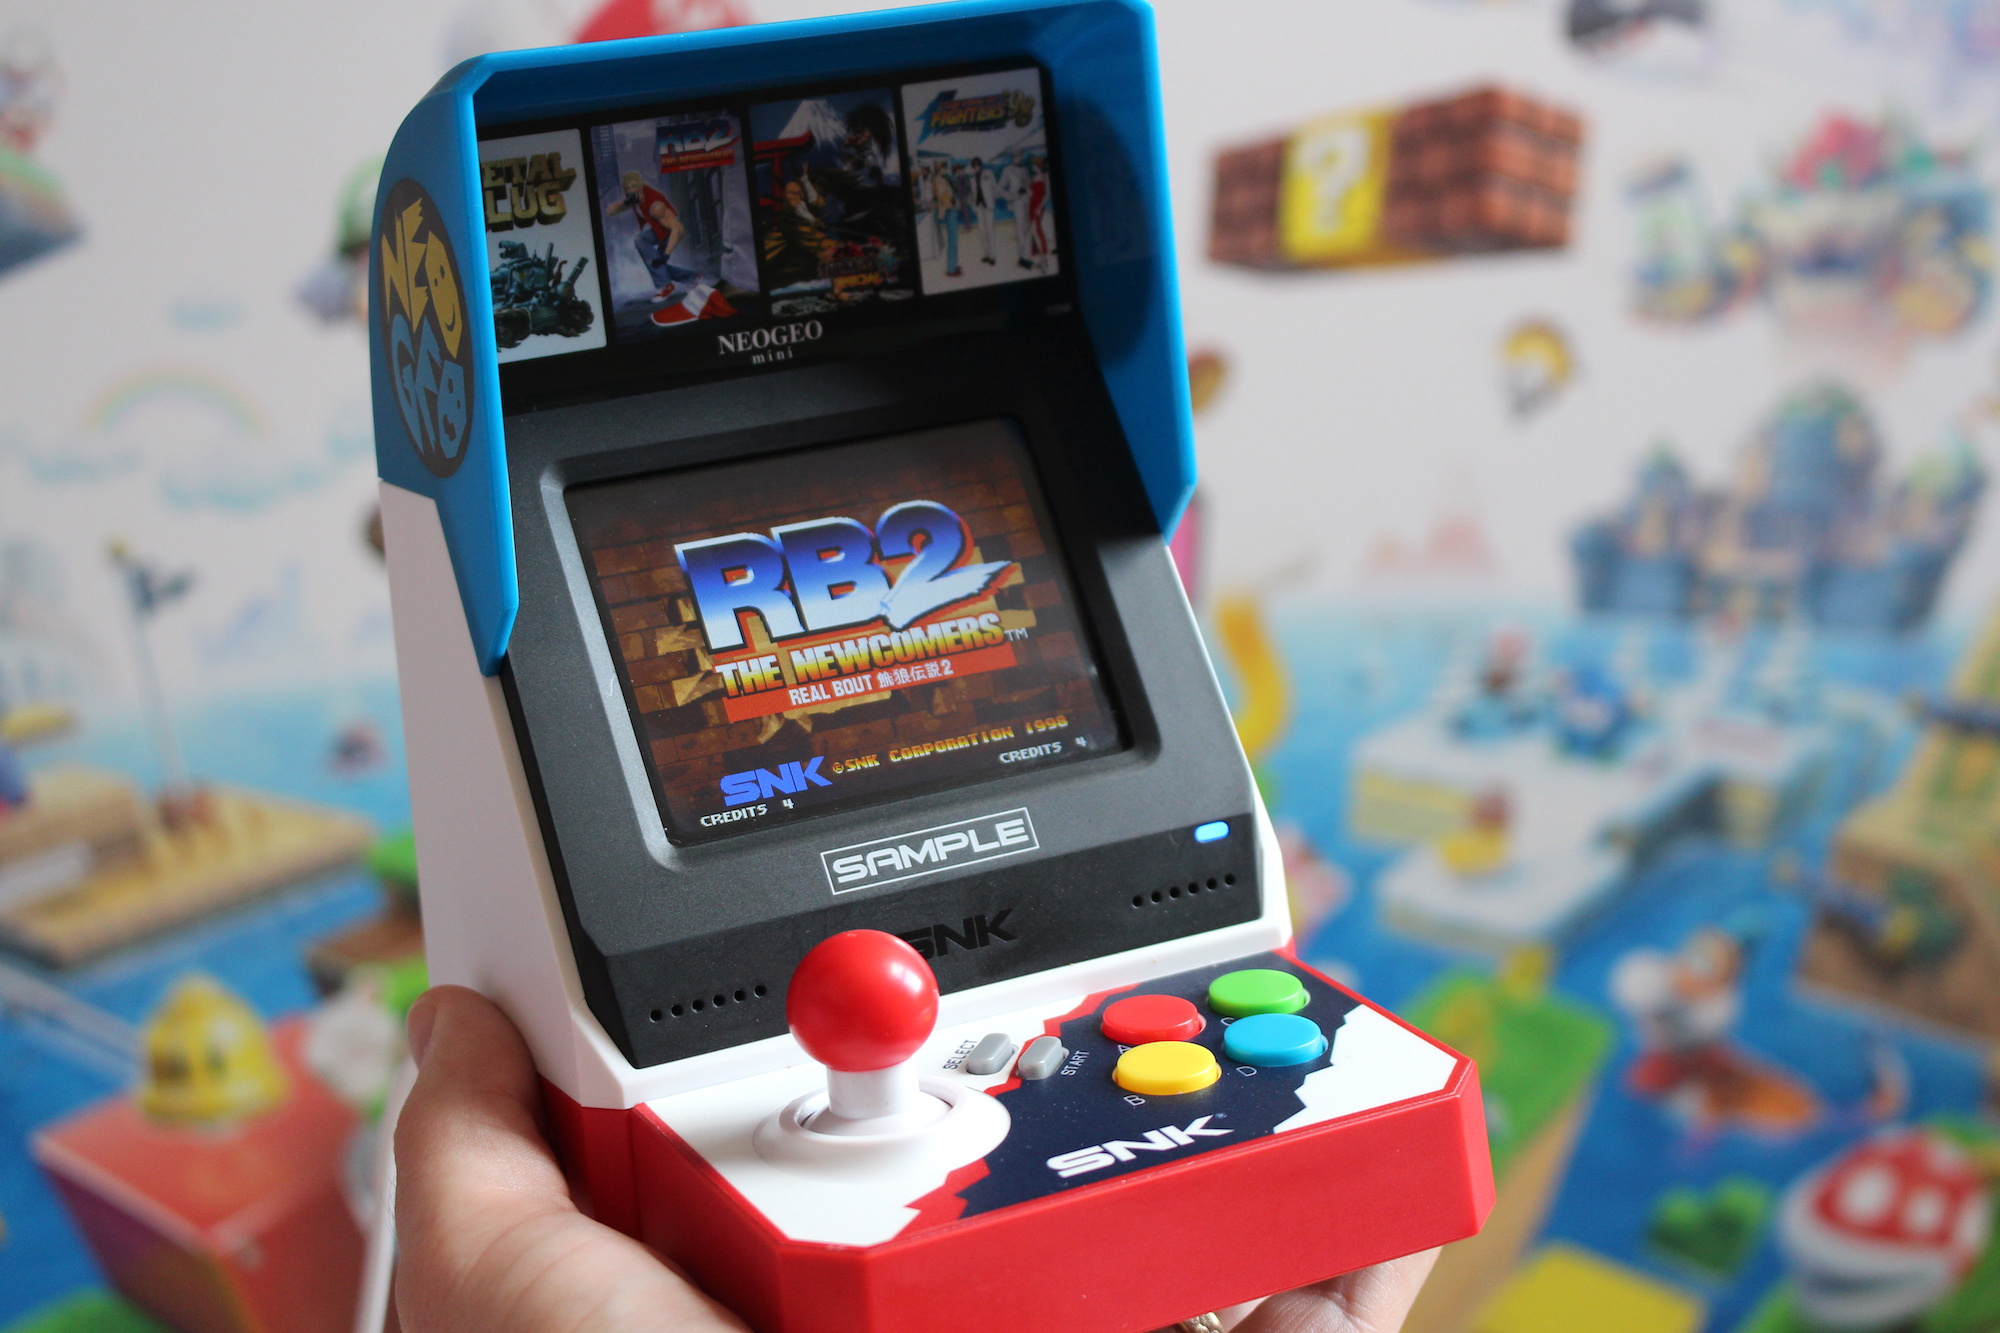 Hardware Review: Does The SNK Neo Geo Mini Outcl Nintendo's ... on